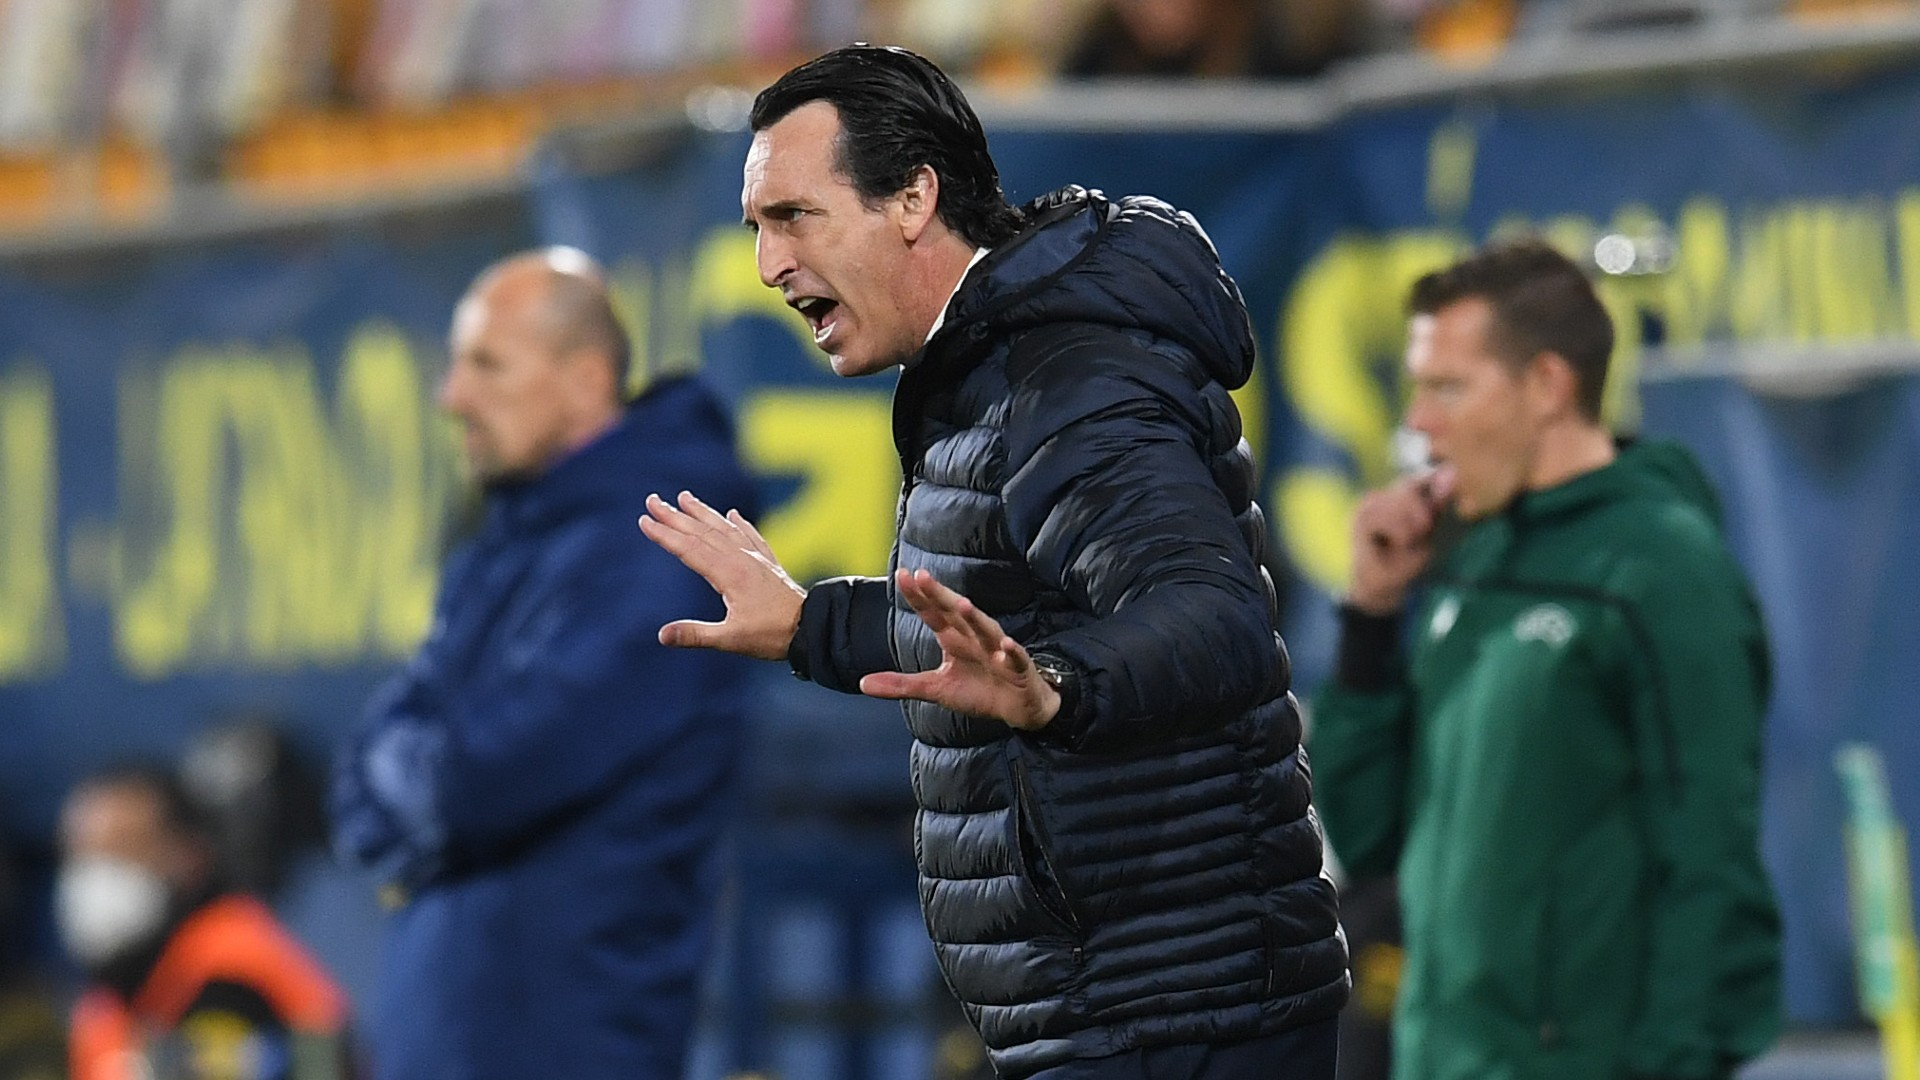 Arsenal clash 'nothing new' for Emery ahead of Europa League semi-final